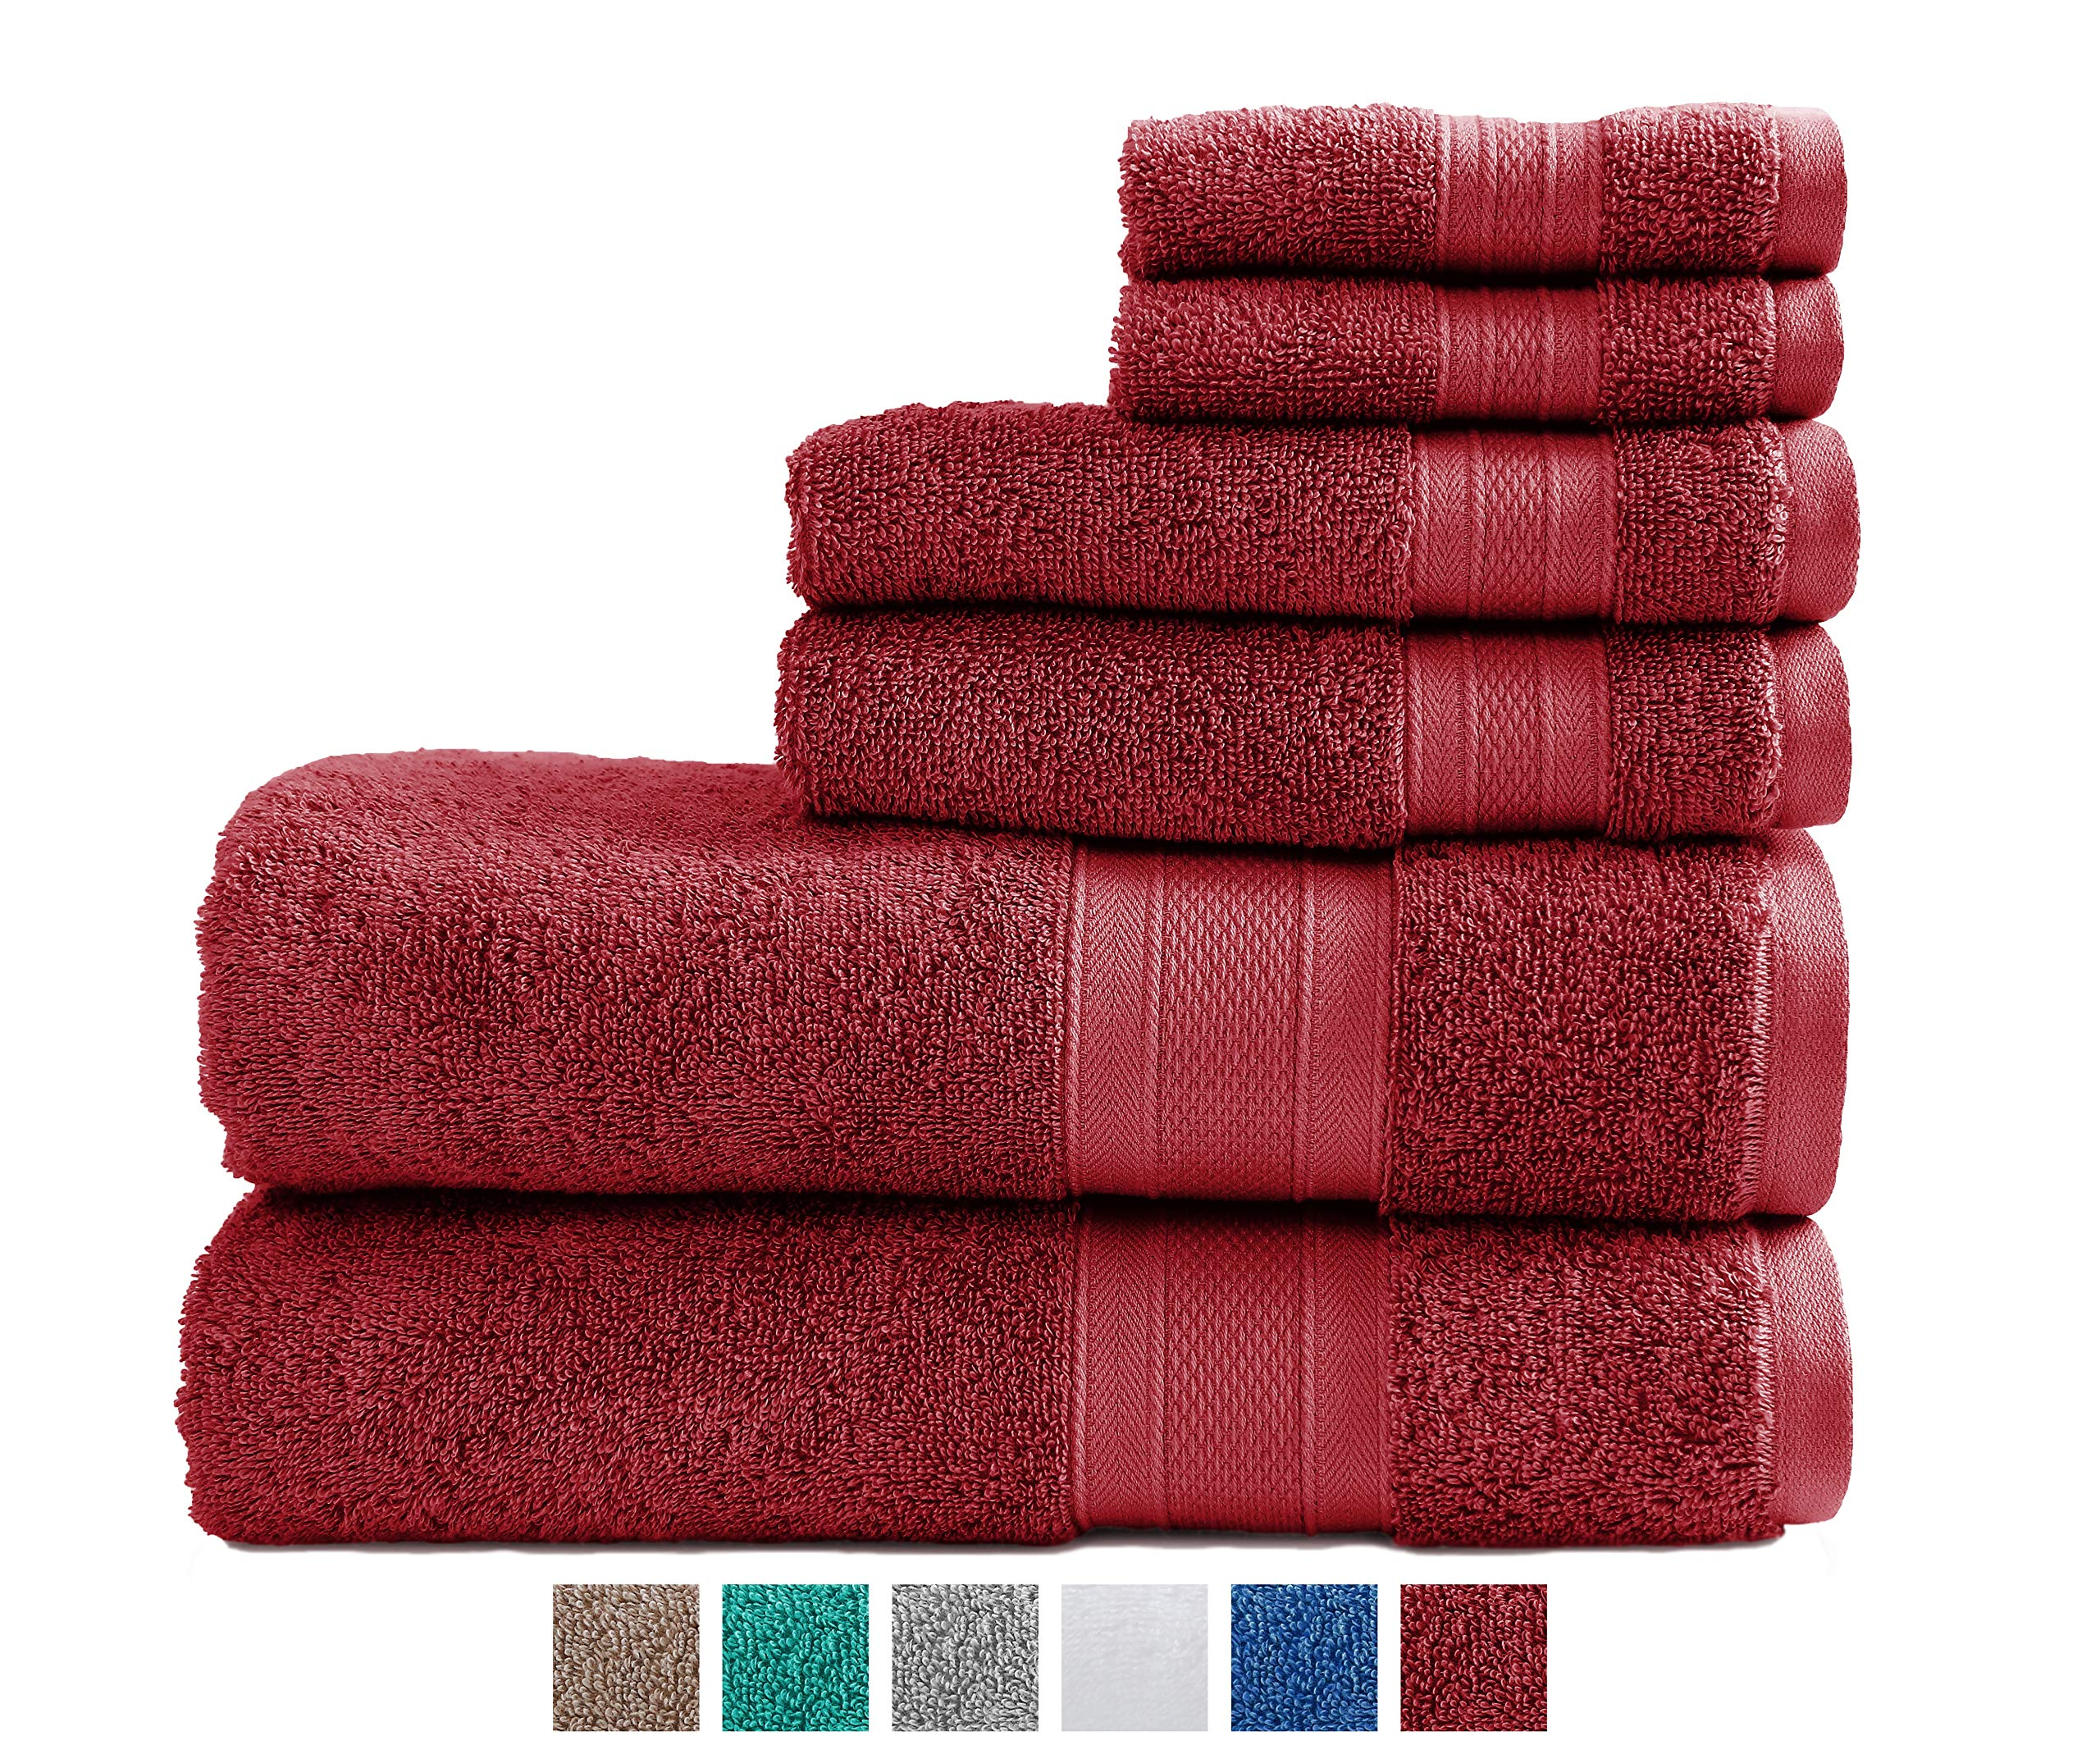 TRIDENT 100% Cotton Towels, 6 Piece Set - 2 Bath Towels, 2 Hand Towels, 2 Washcloths, Super Soft and Highly Absorbent, Soft & Plush Bath Towels, 14 lbs/dzn (RED)